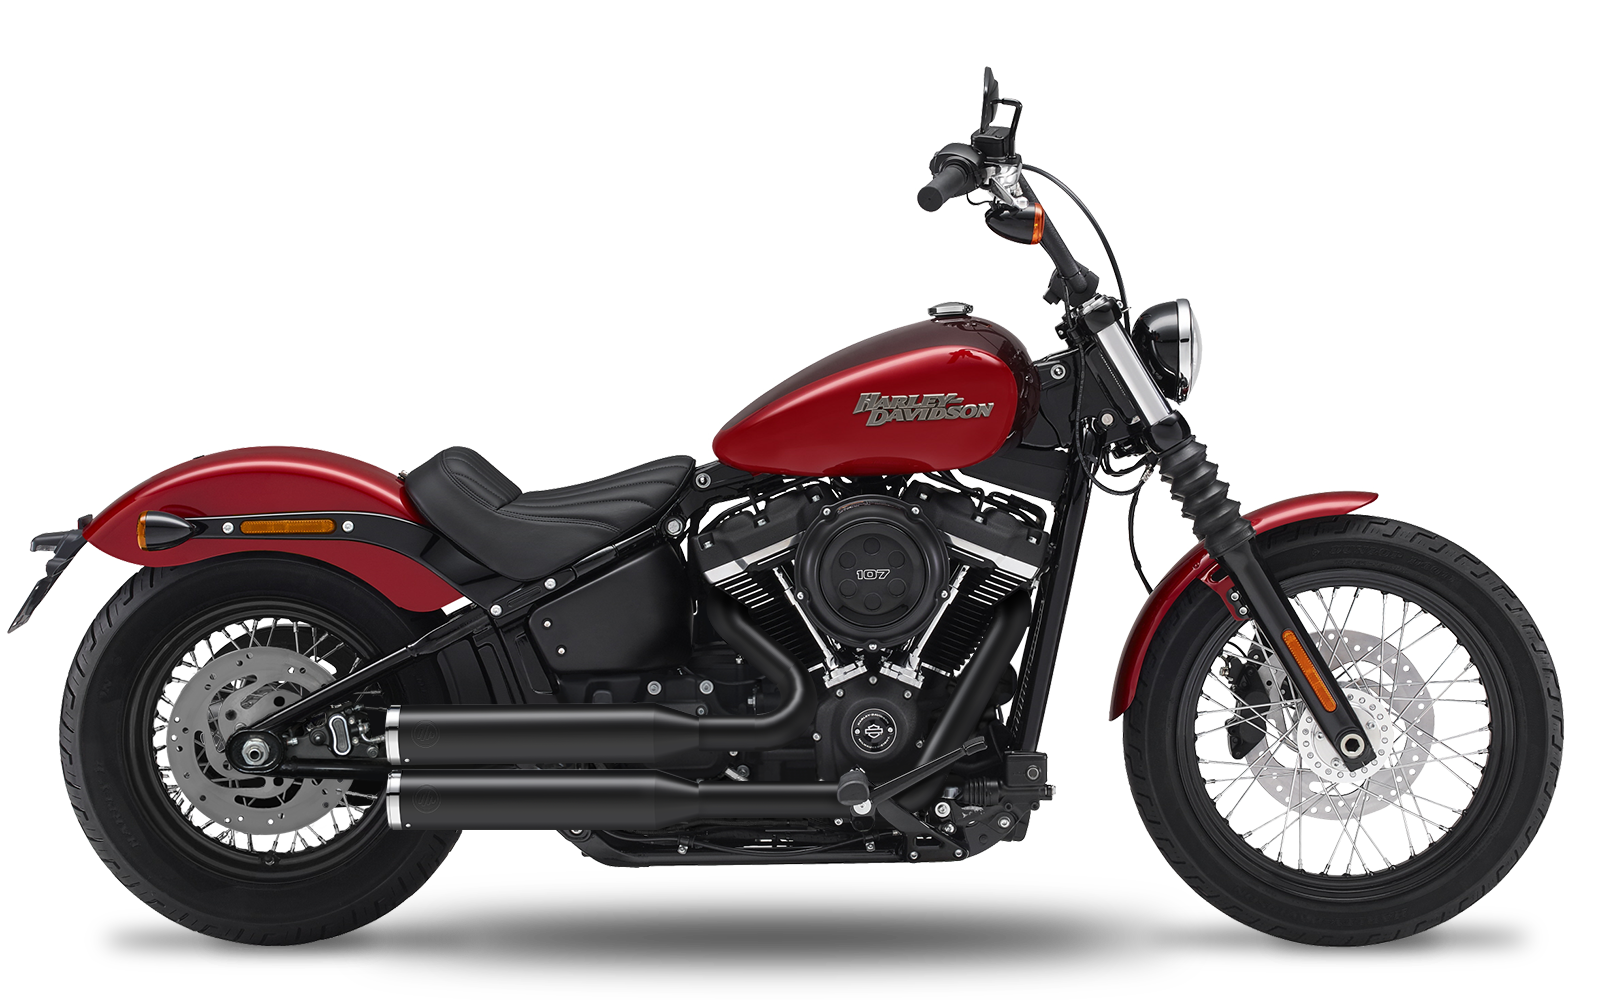 Softail - Street Bob - ME107 - 2018-2020 - Complete systems